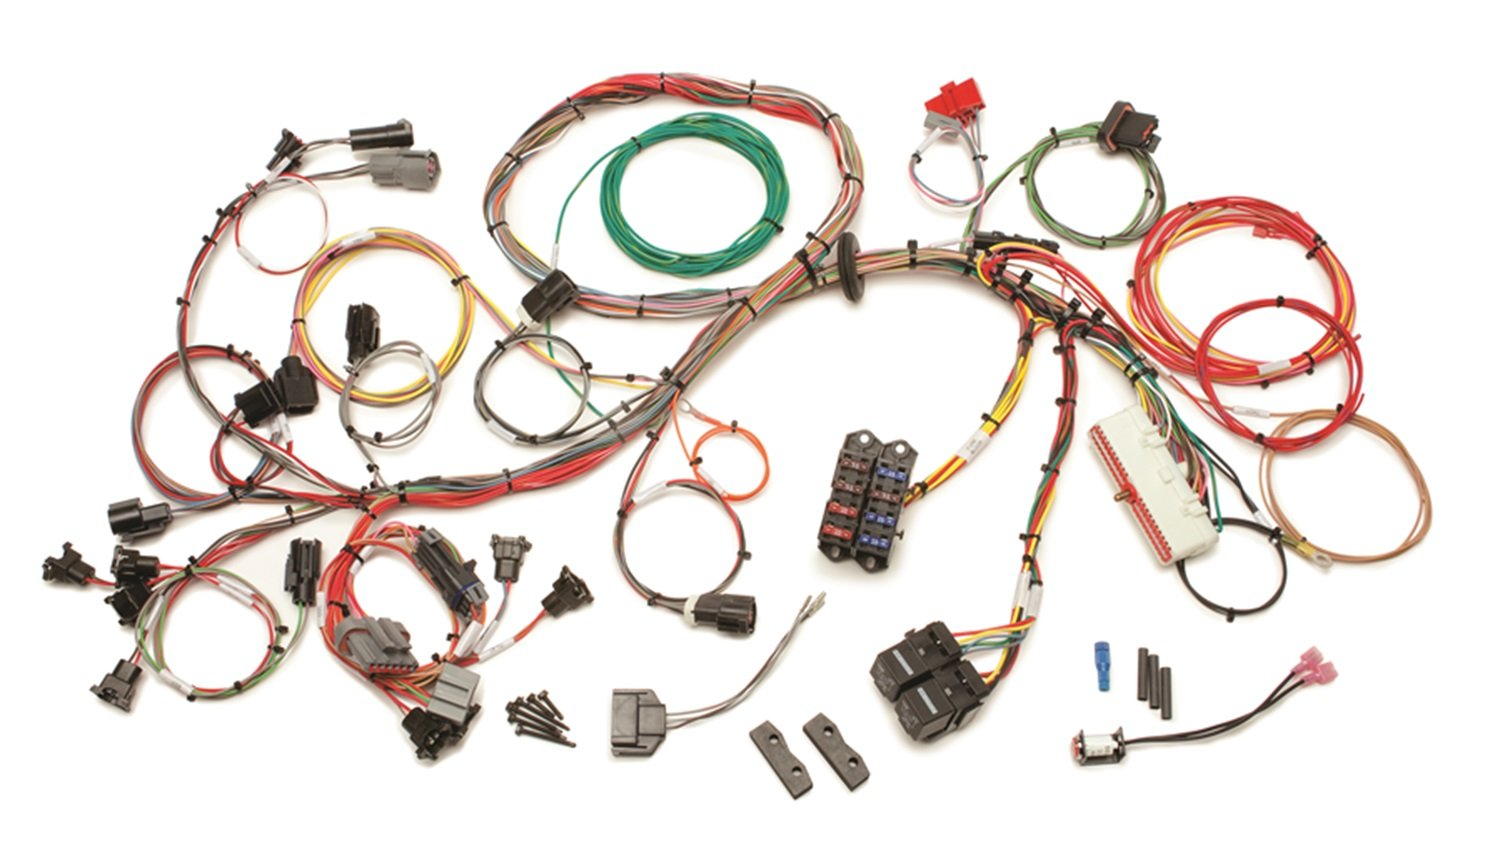 71UX1IBfleL._SL1500_ amazon com painless 60510 5 0l wiring harness automotive ford wiring harness at edmiracle.co